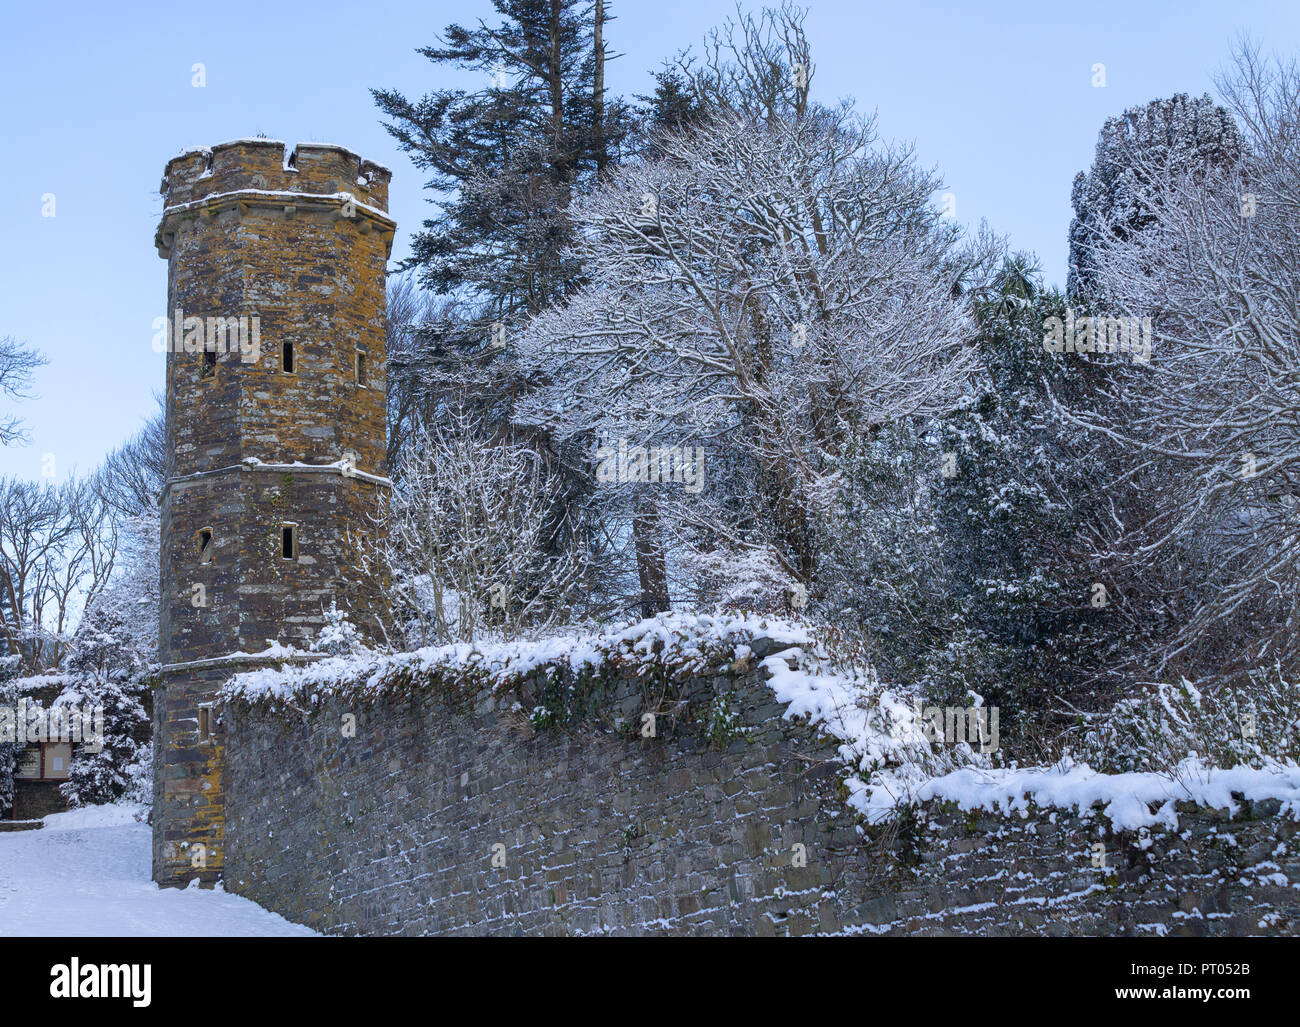 ice and snow covering branches and a stone tower in a bleak winter scene in west cork ireland - Stock Image